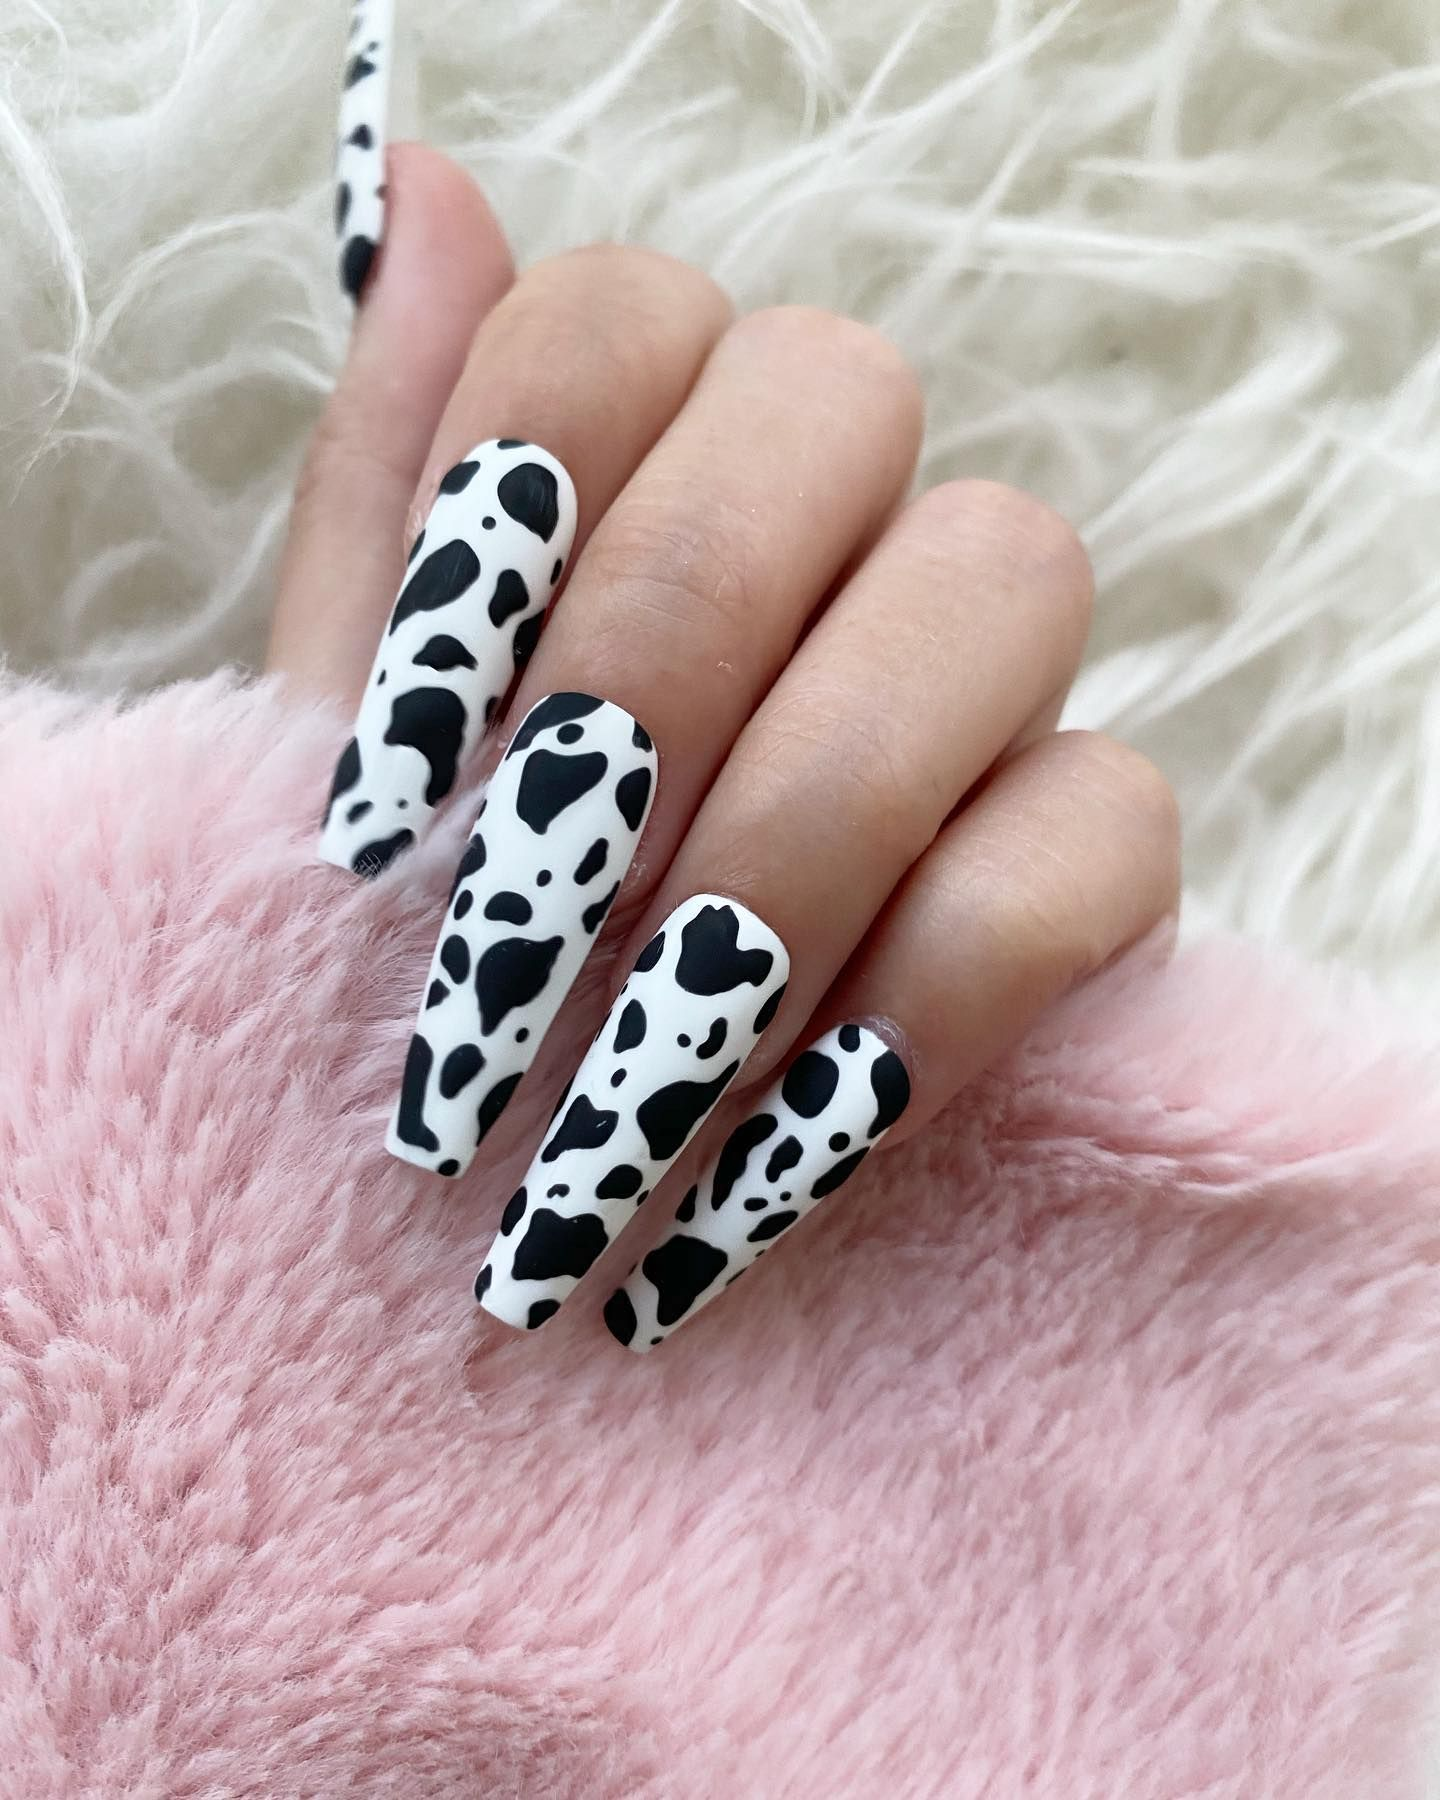 Black and white acrylic coffin cow nails